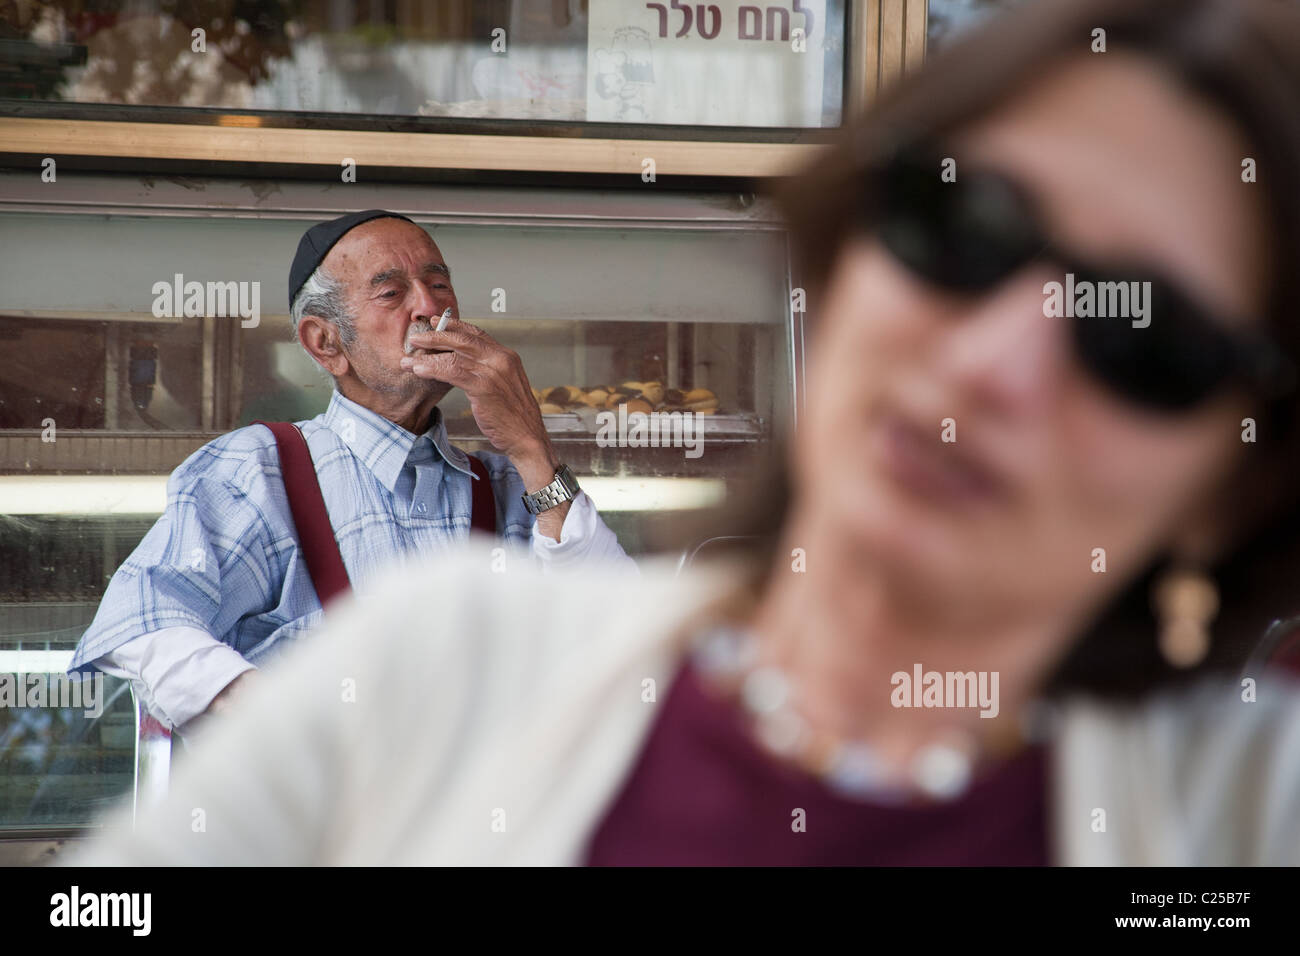 Elderly Jewish man smoking in background with out of focus shalow depth of field woman in foreground - Stock Image